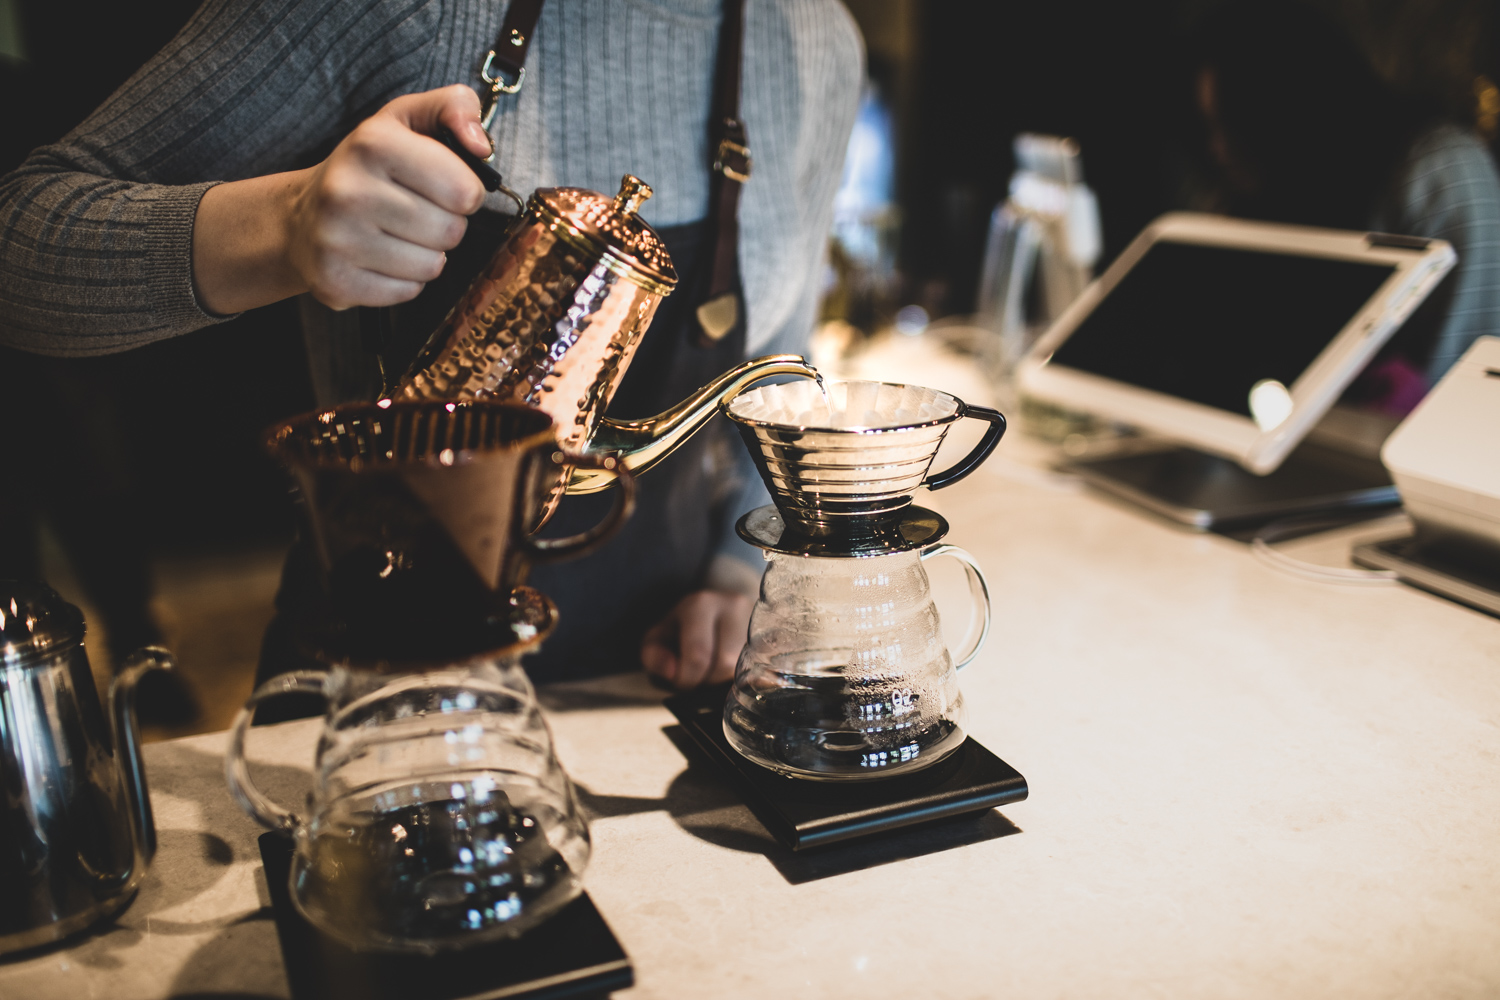 A pour-over coffee at Alchemist Trading Co.